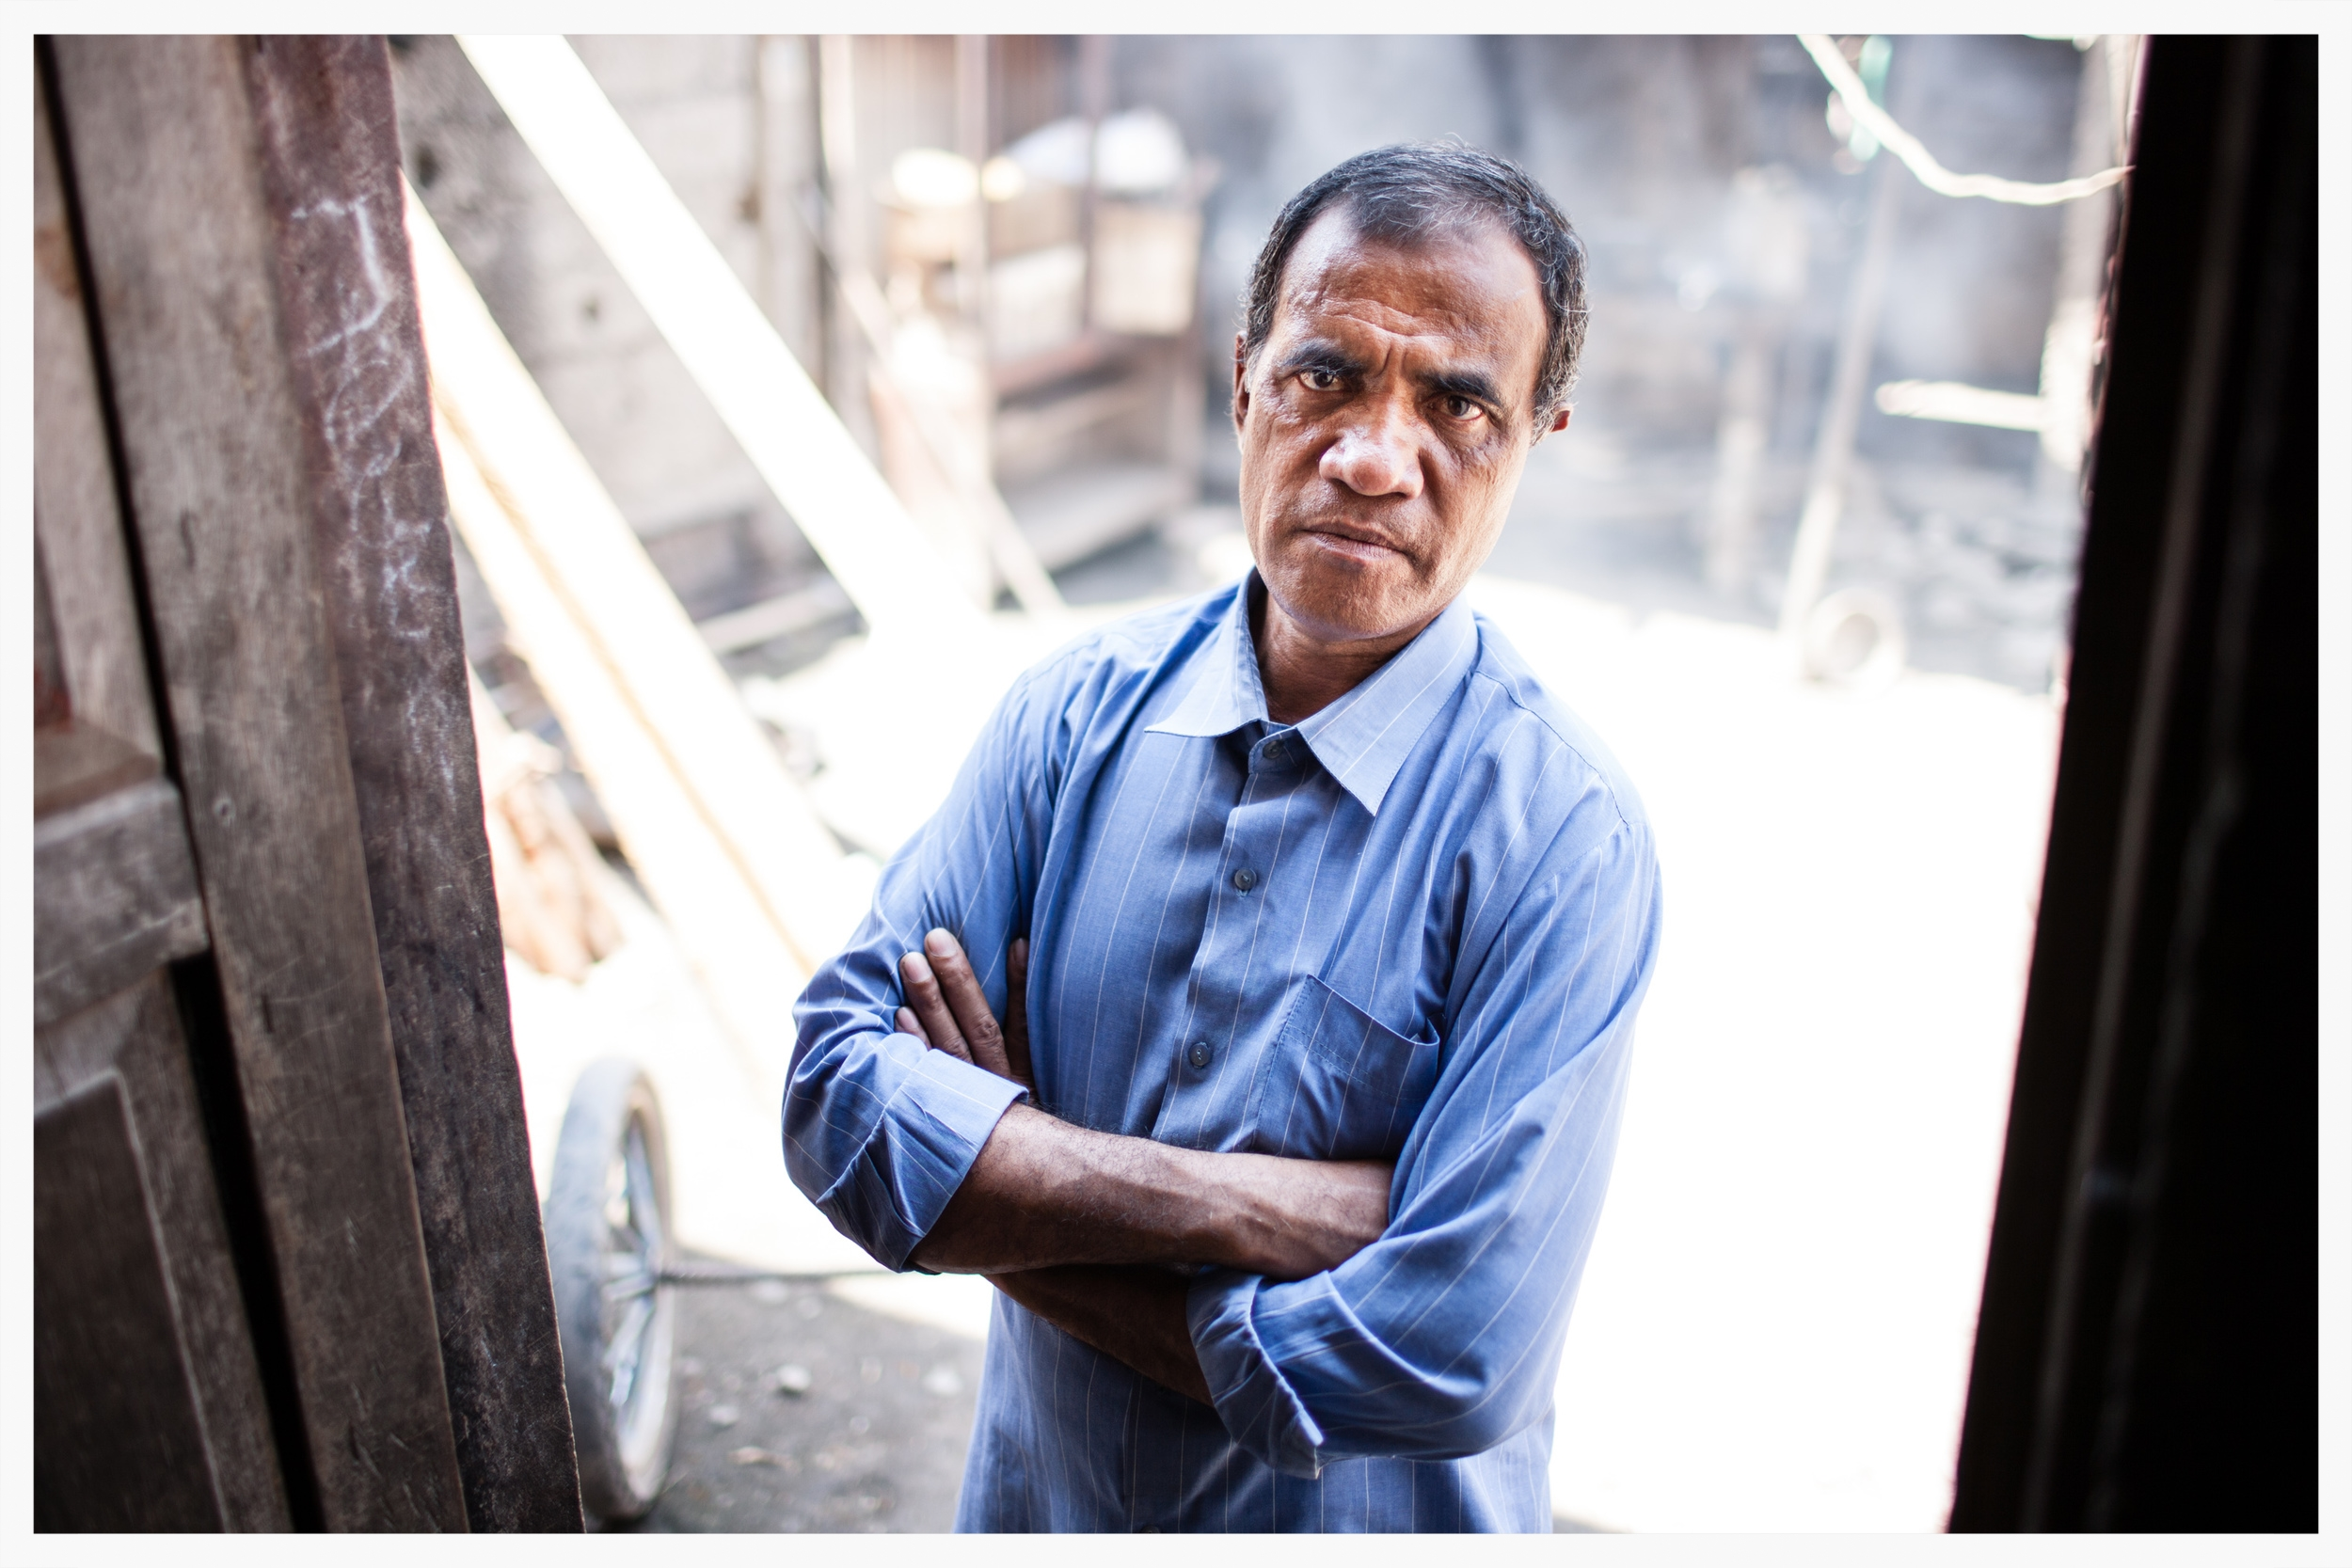 Antonio da Silva - a critic of independence - lost part of his ear when men opposed to his political views attacked him. East Timor. Photo © Marcus Perkins